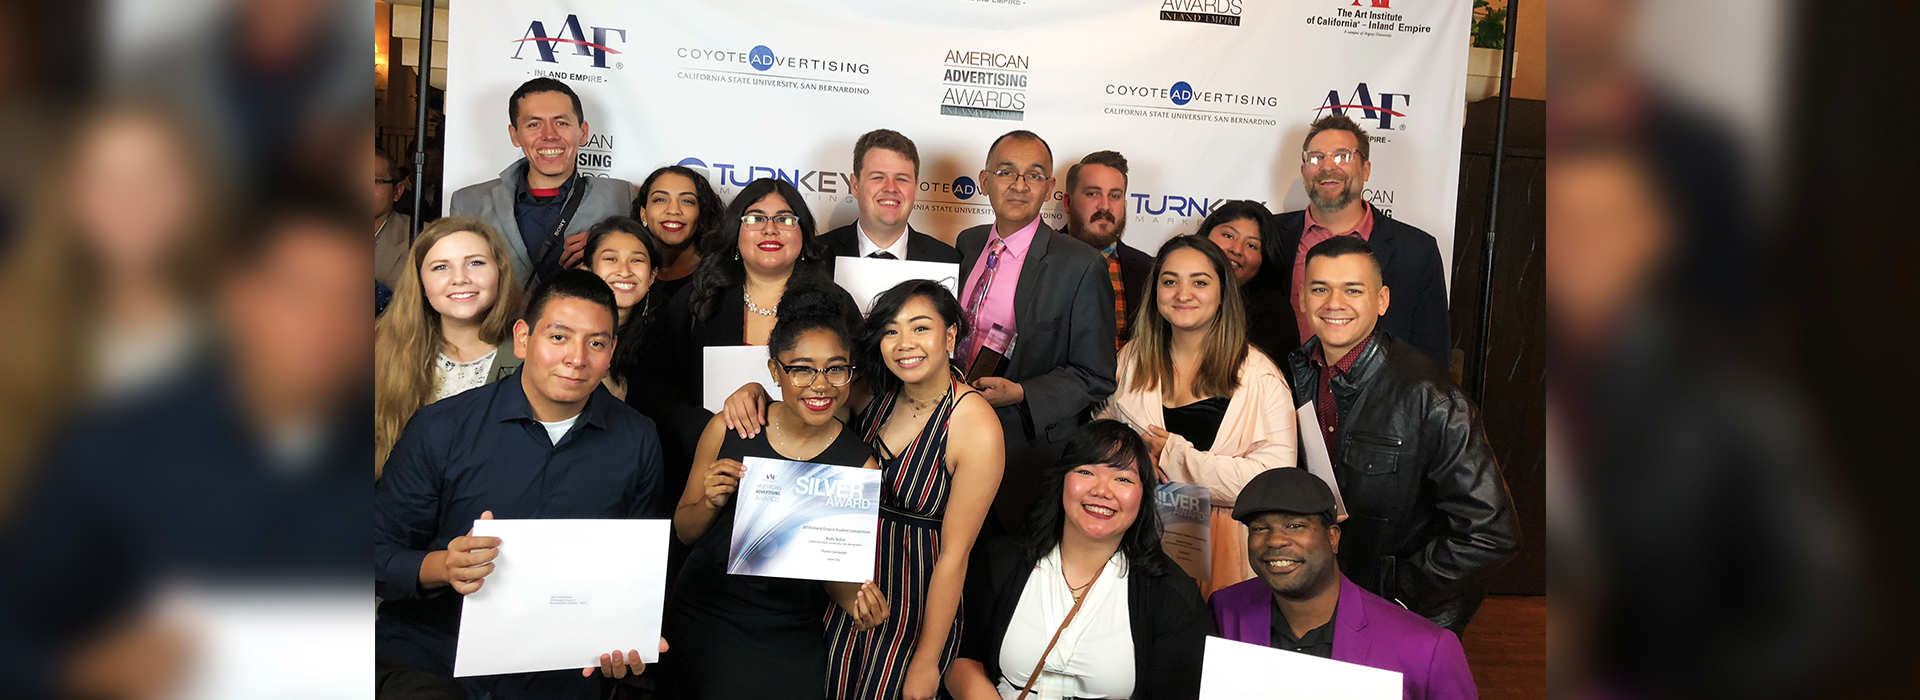 Department of Art at Cal State San Bernardino took home 31 ADDY Awards